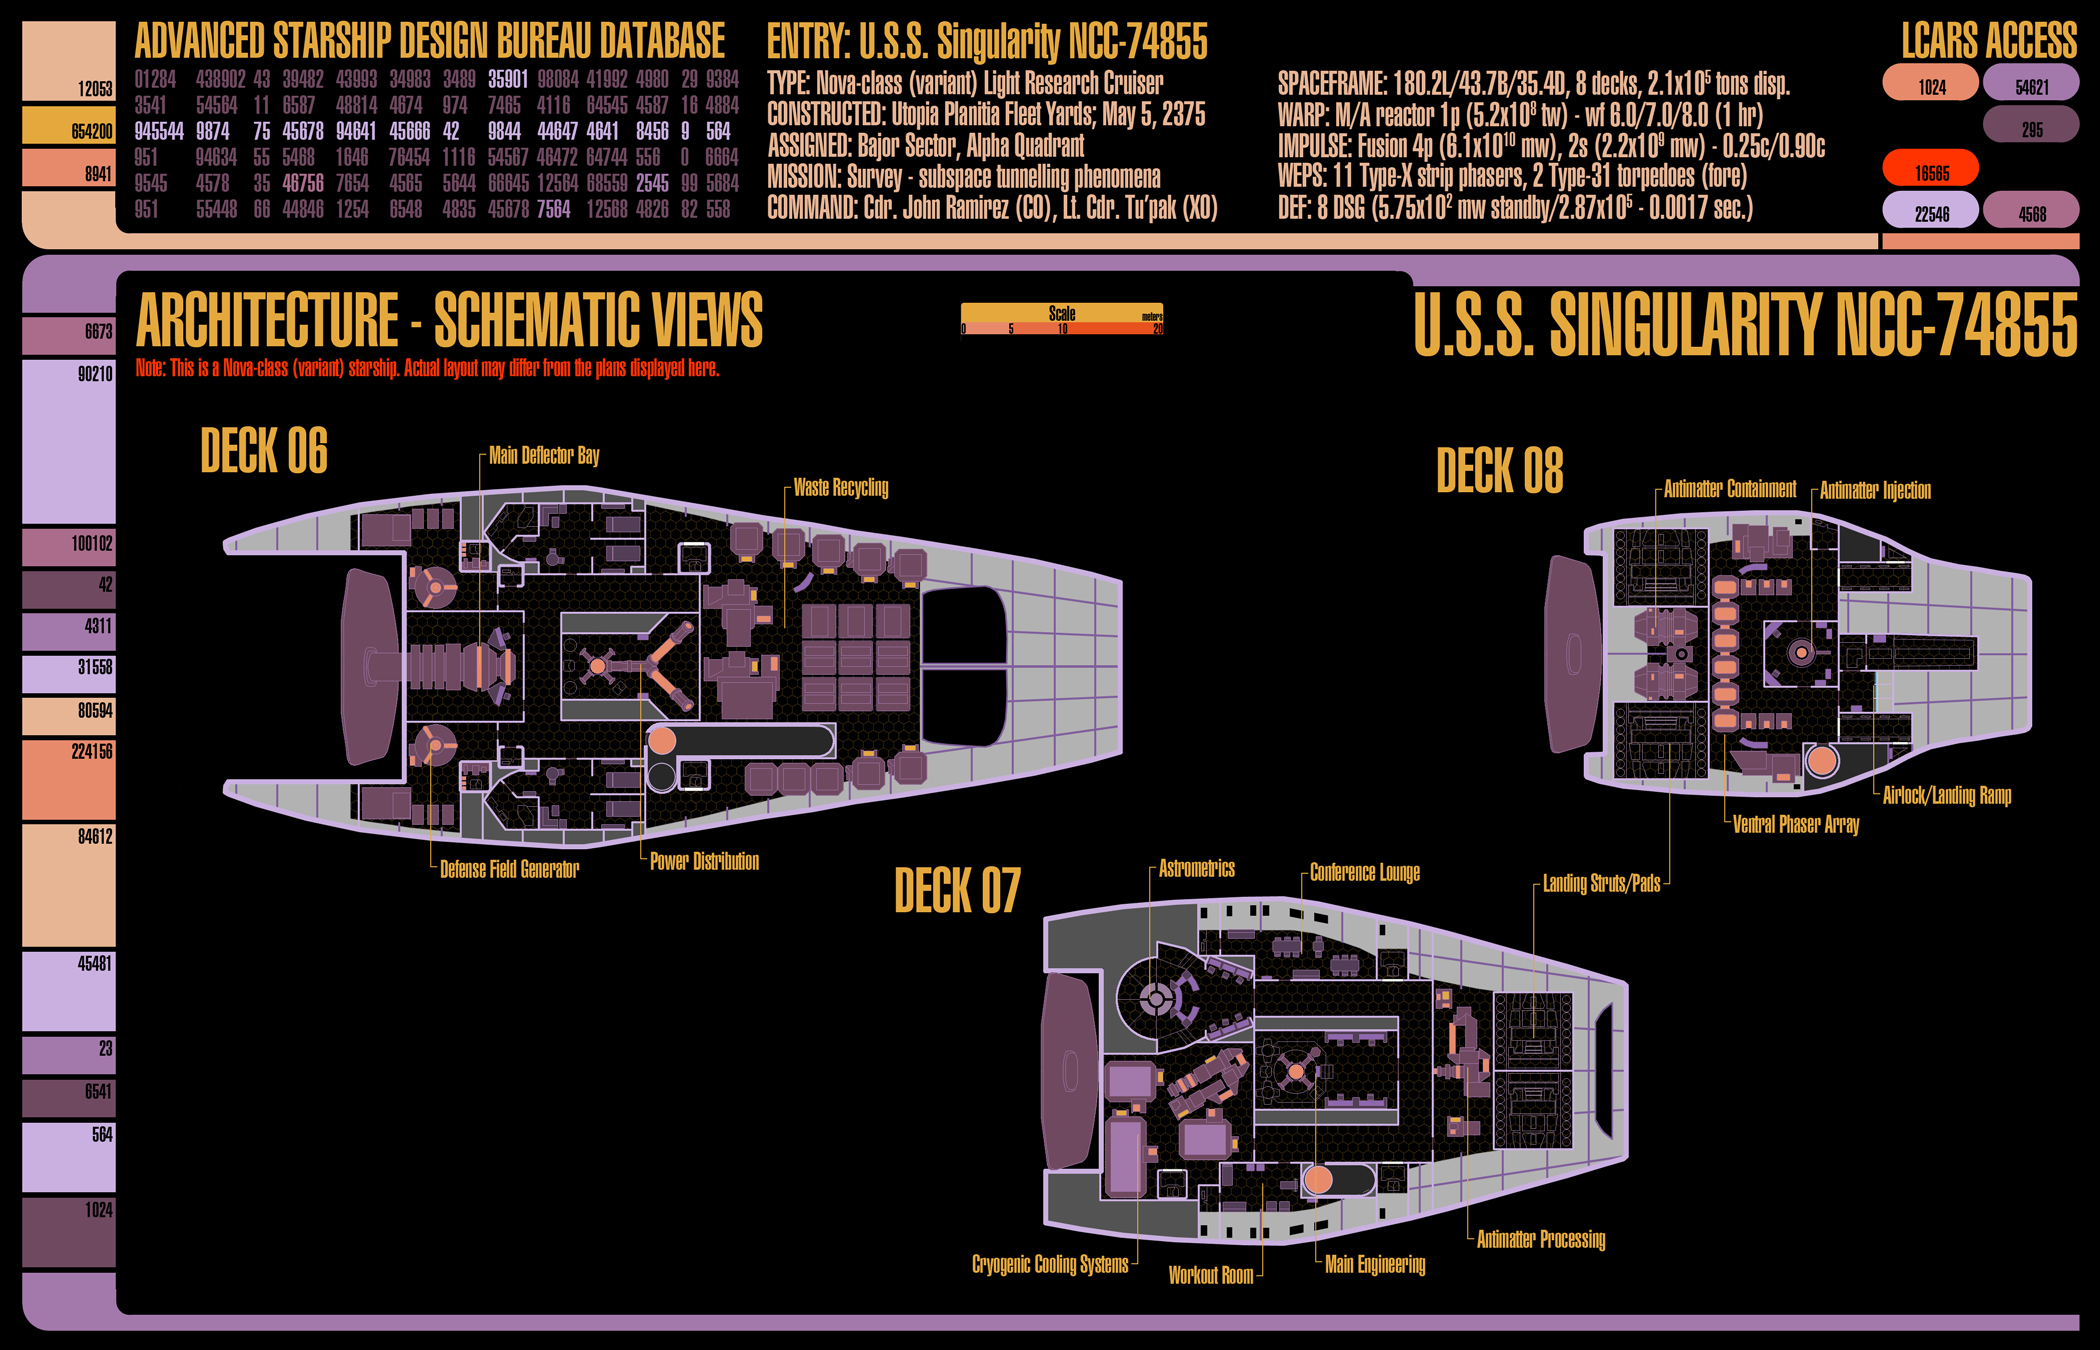 U.S.S. Singularity (NCC-74855) - deckplans for an upcoming Star Trek (TNG-era) game I'll be running using GURPS. These are decks 6-8.